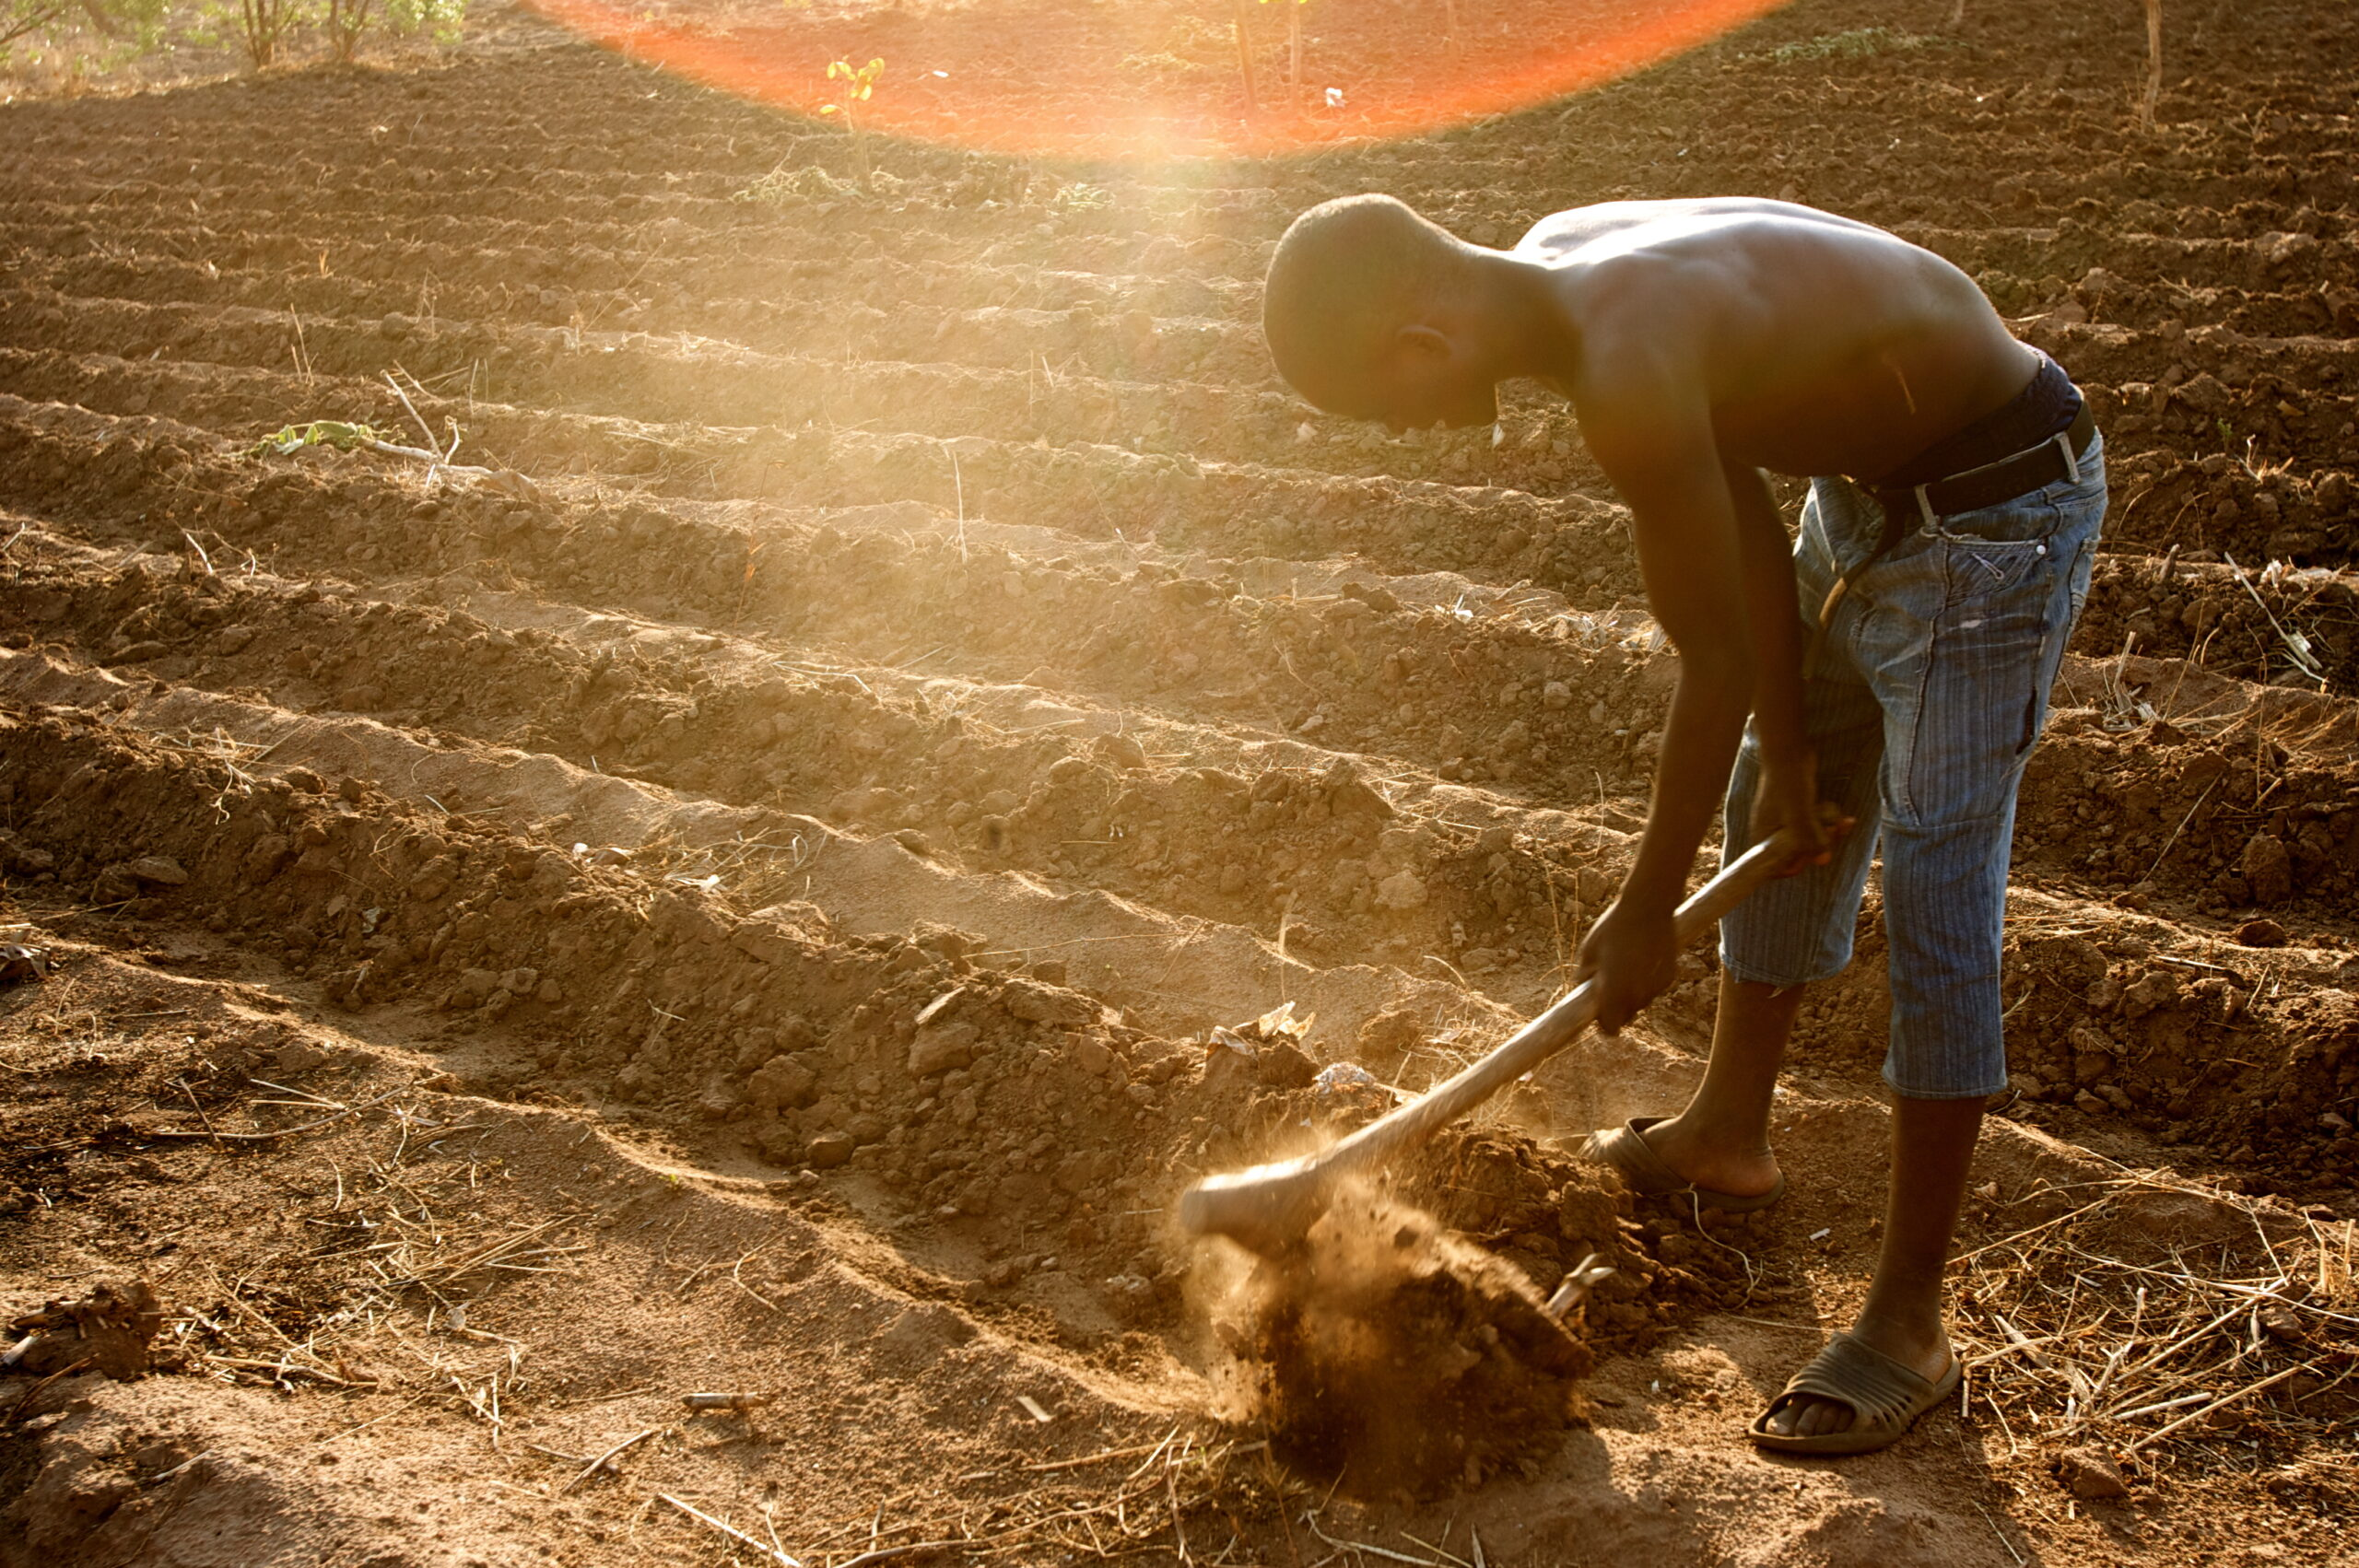 Farming lures back young people in Africa